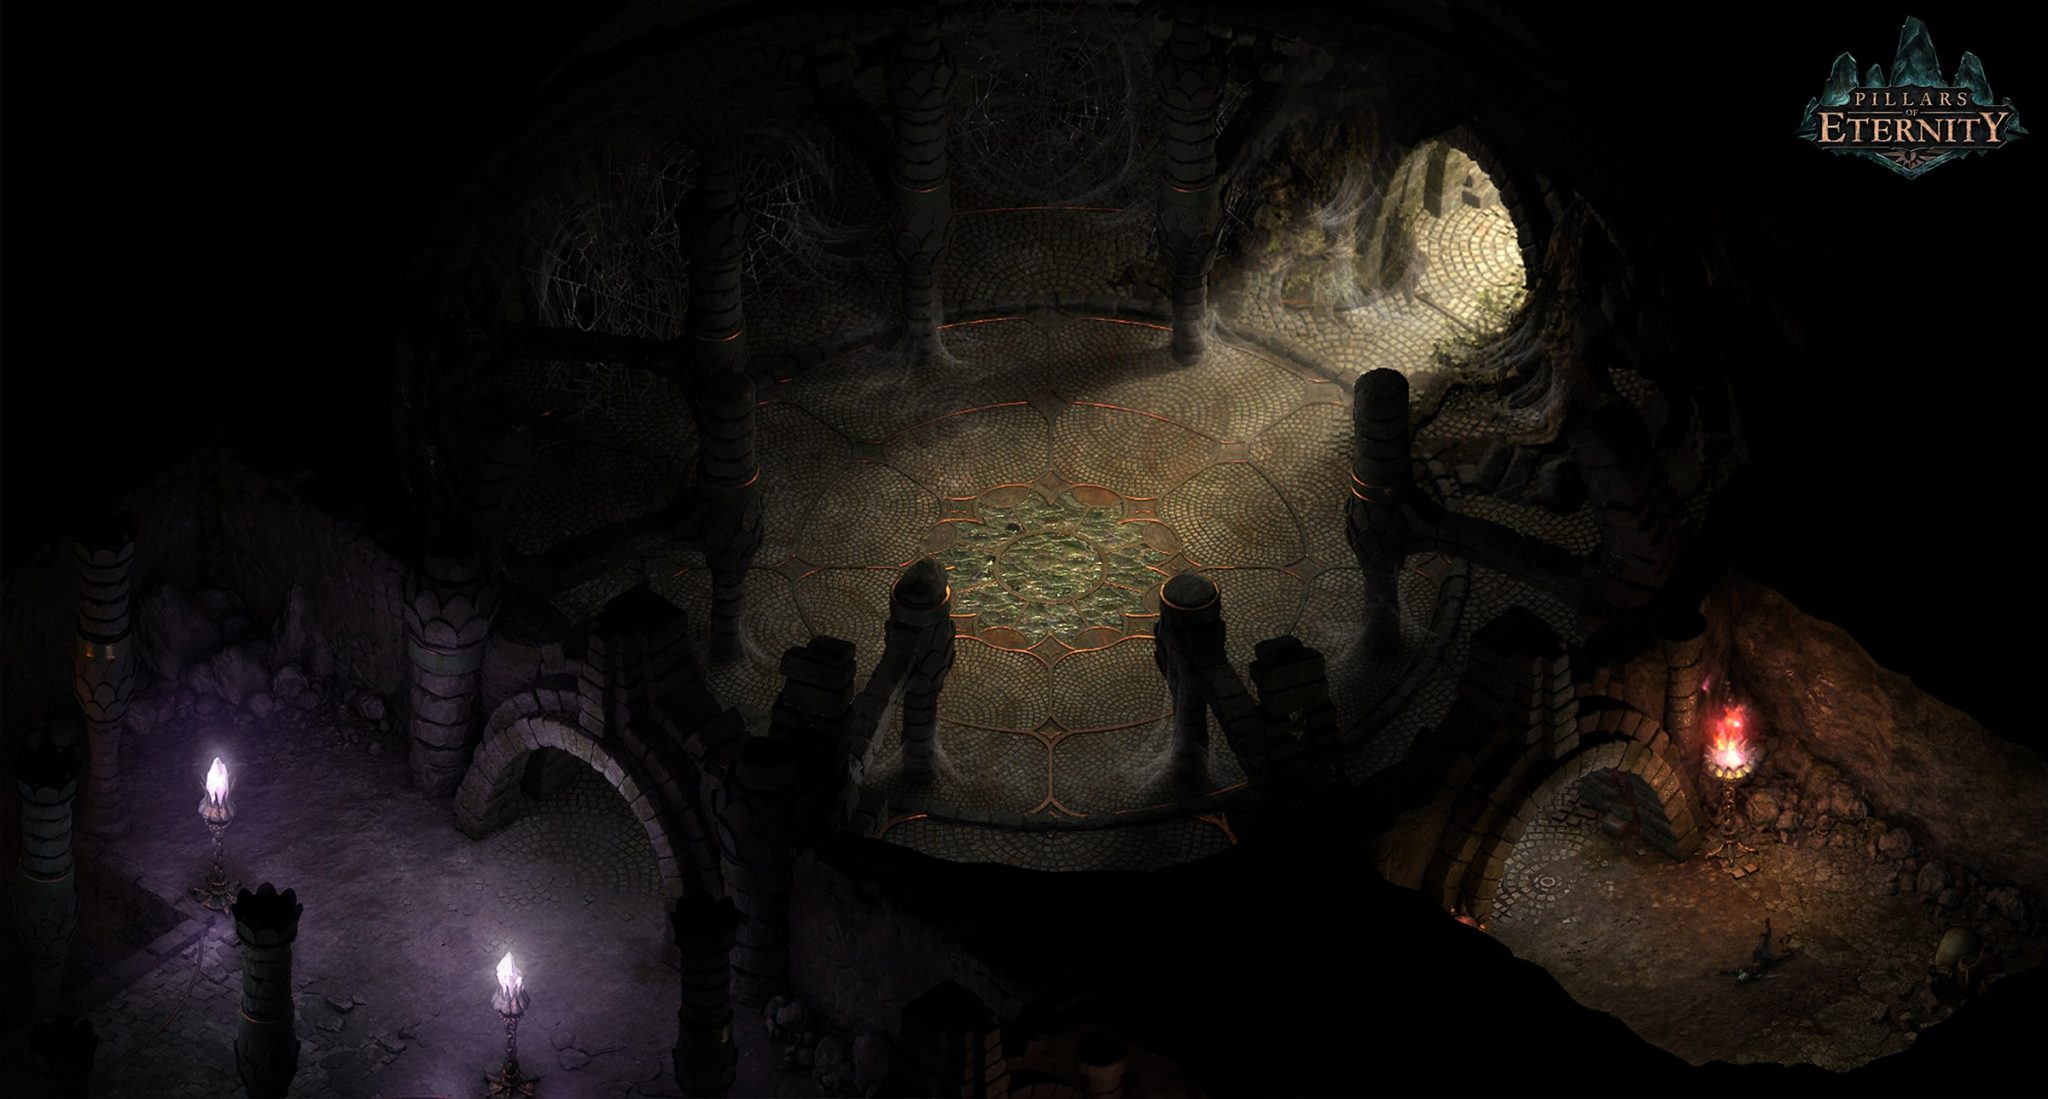 Pillars of Eternity (6)